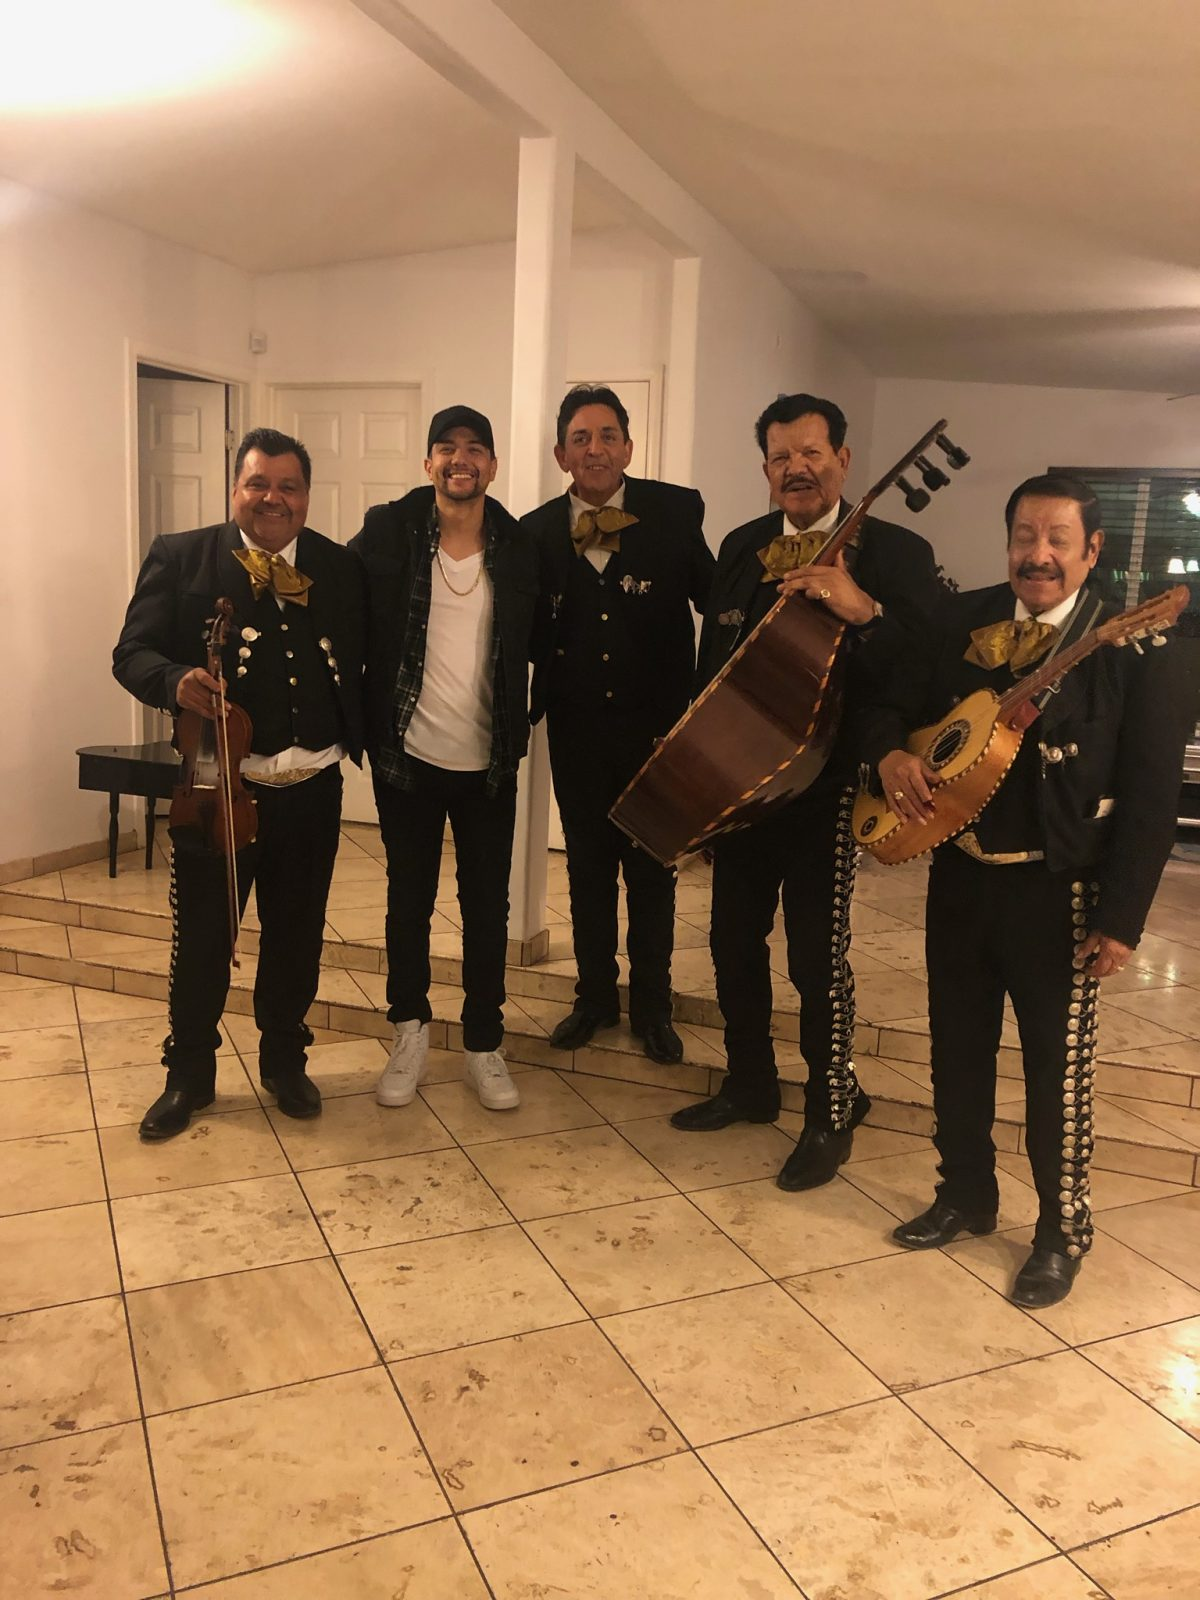 Luis Coronel with Mariachi Alegre de Tucson on his birthday